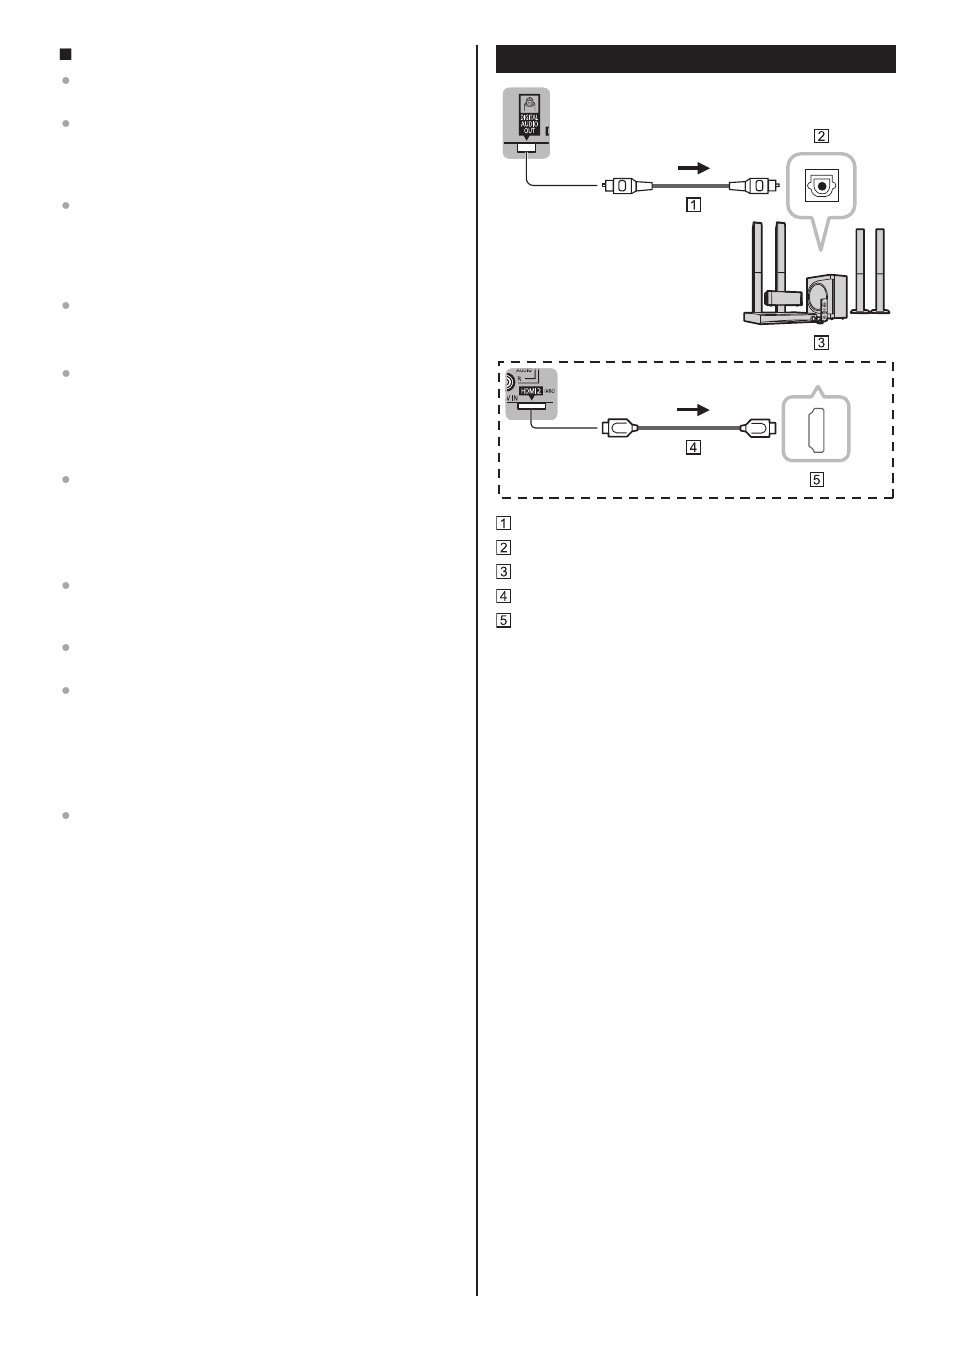 Audio Connection Panasonic Tc 55as680u User Manual Page 13 28